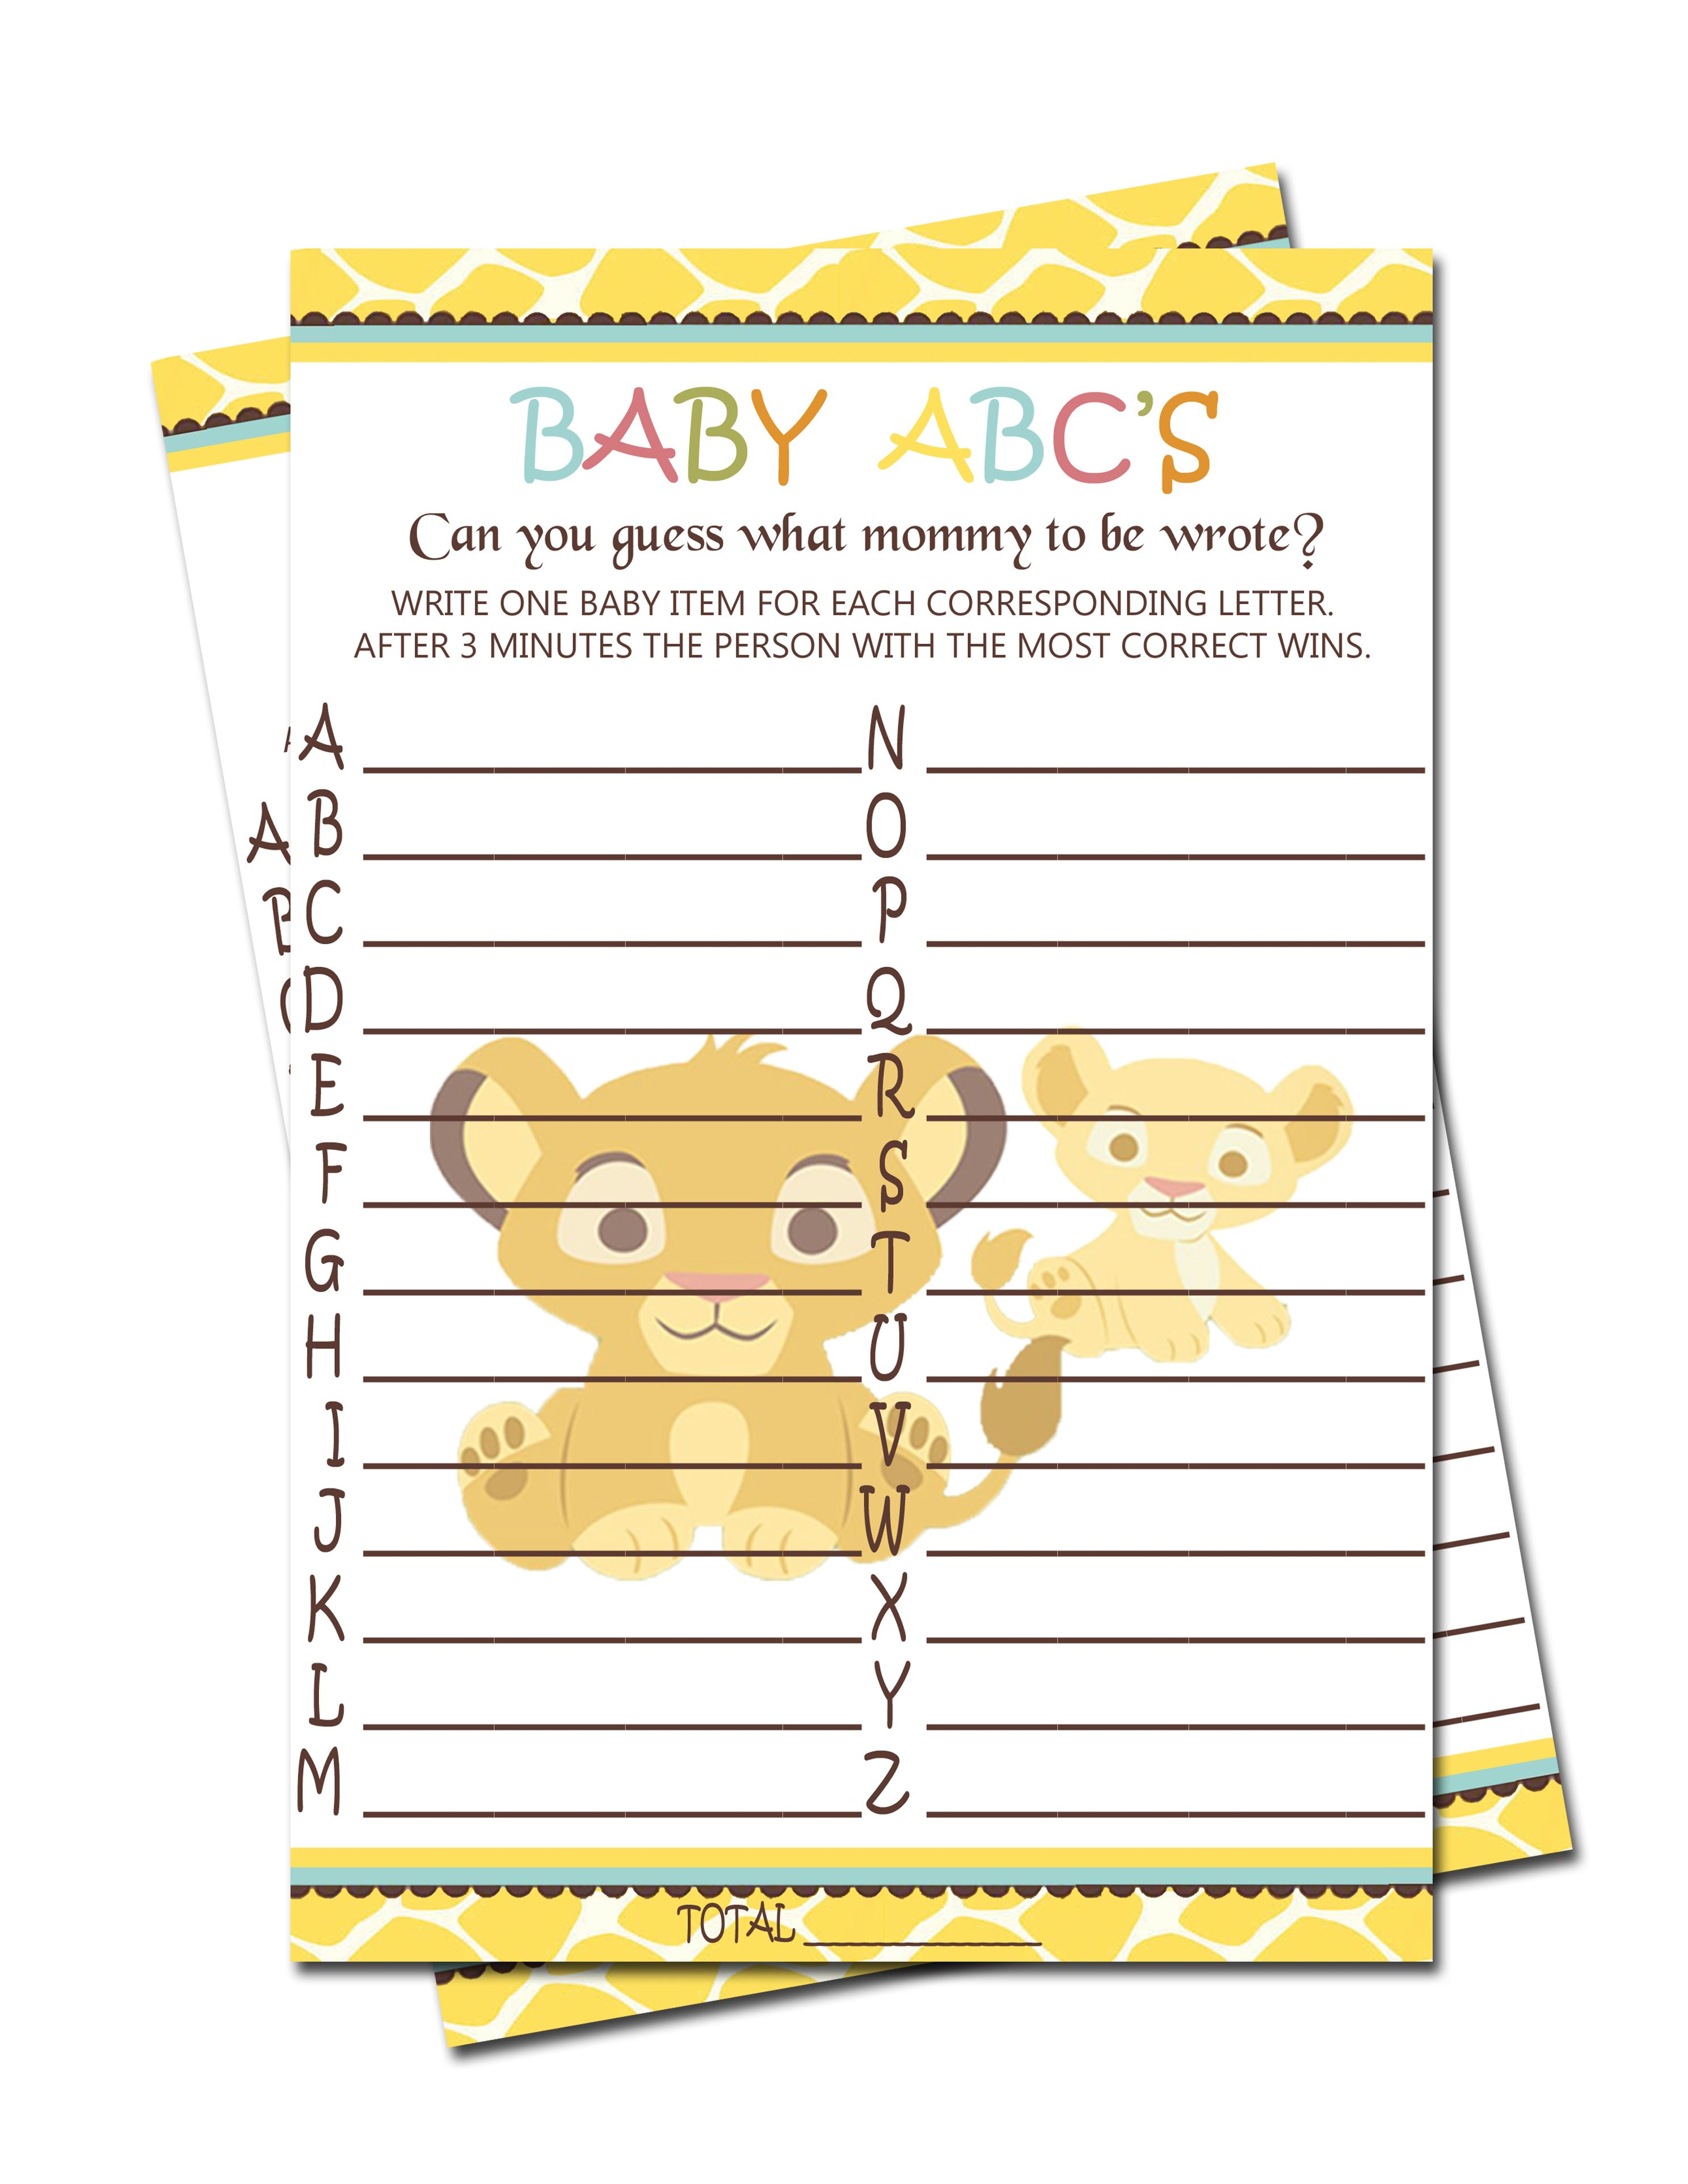 Simba Lion King Baby ABC\'S Game - Baby Shower Games $3.99 | Simba ...